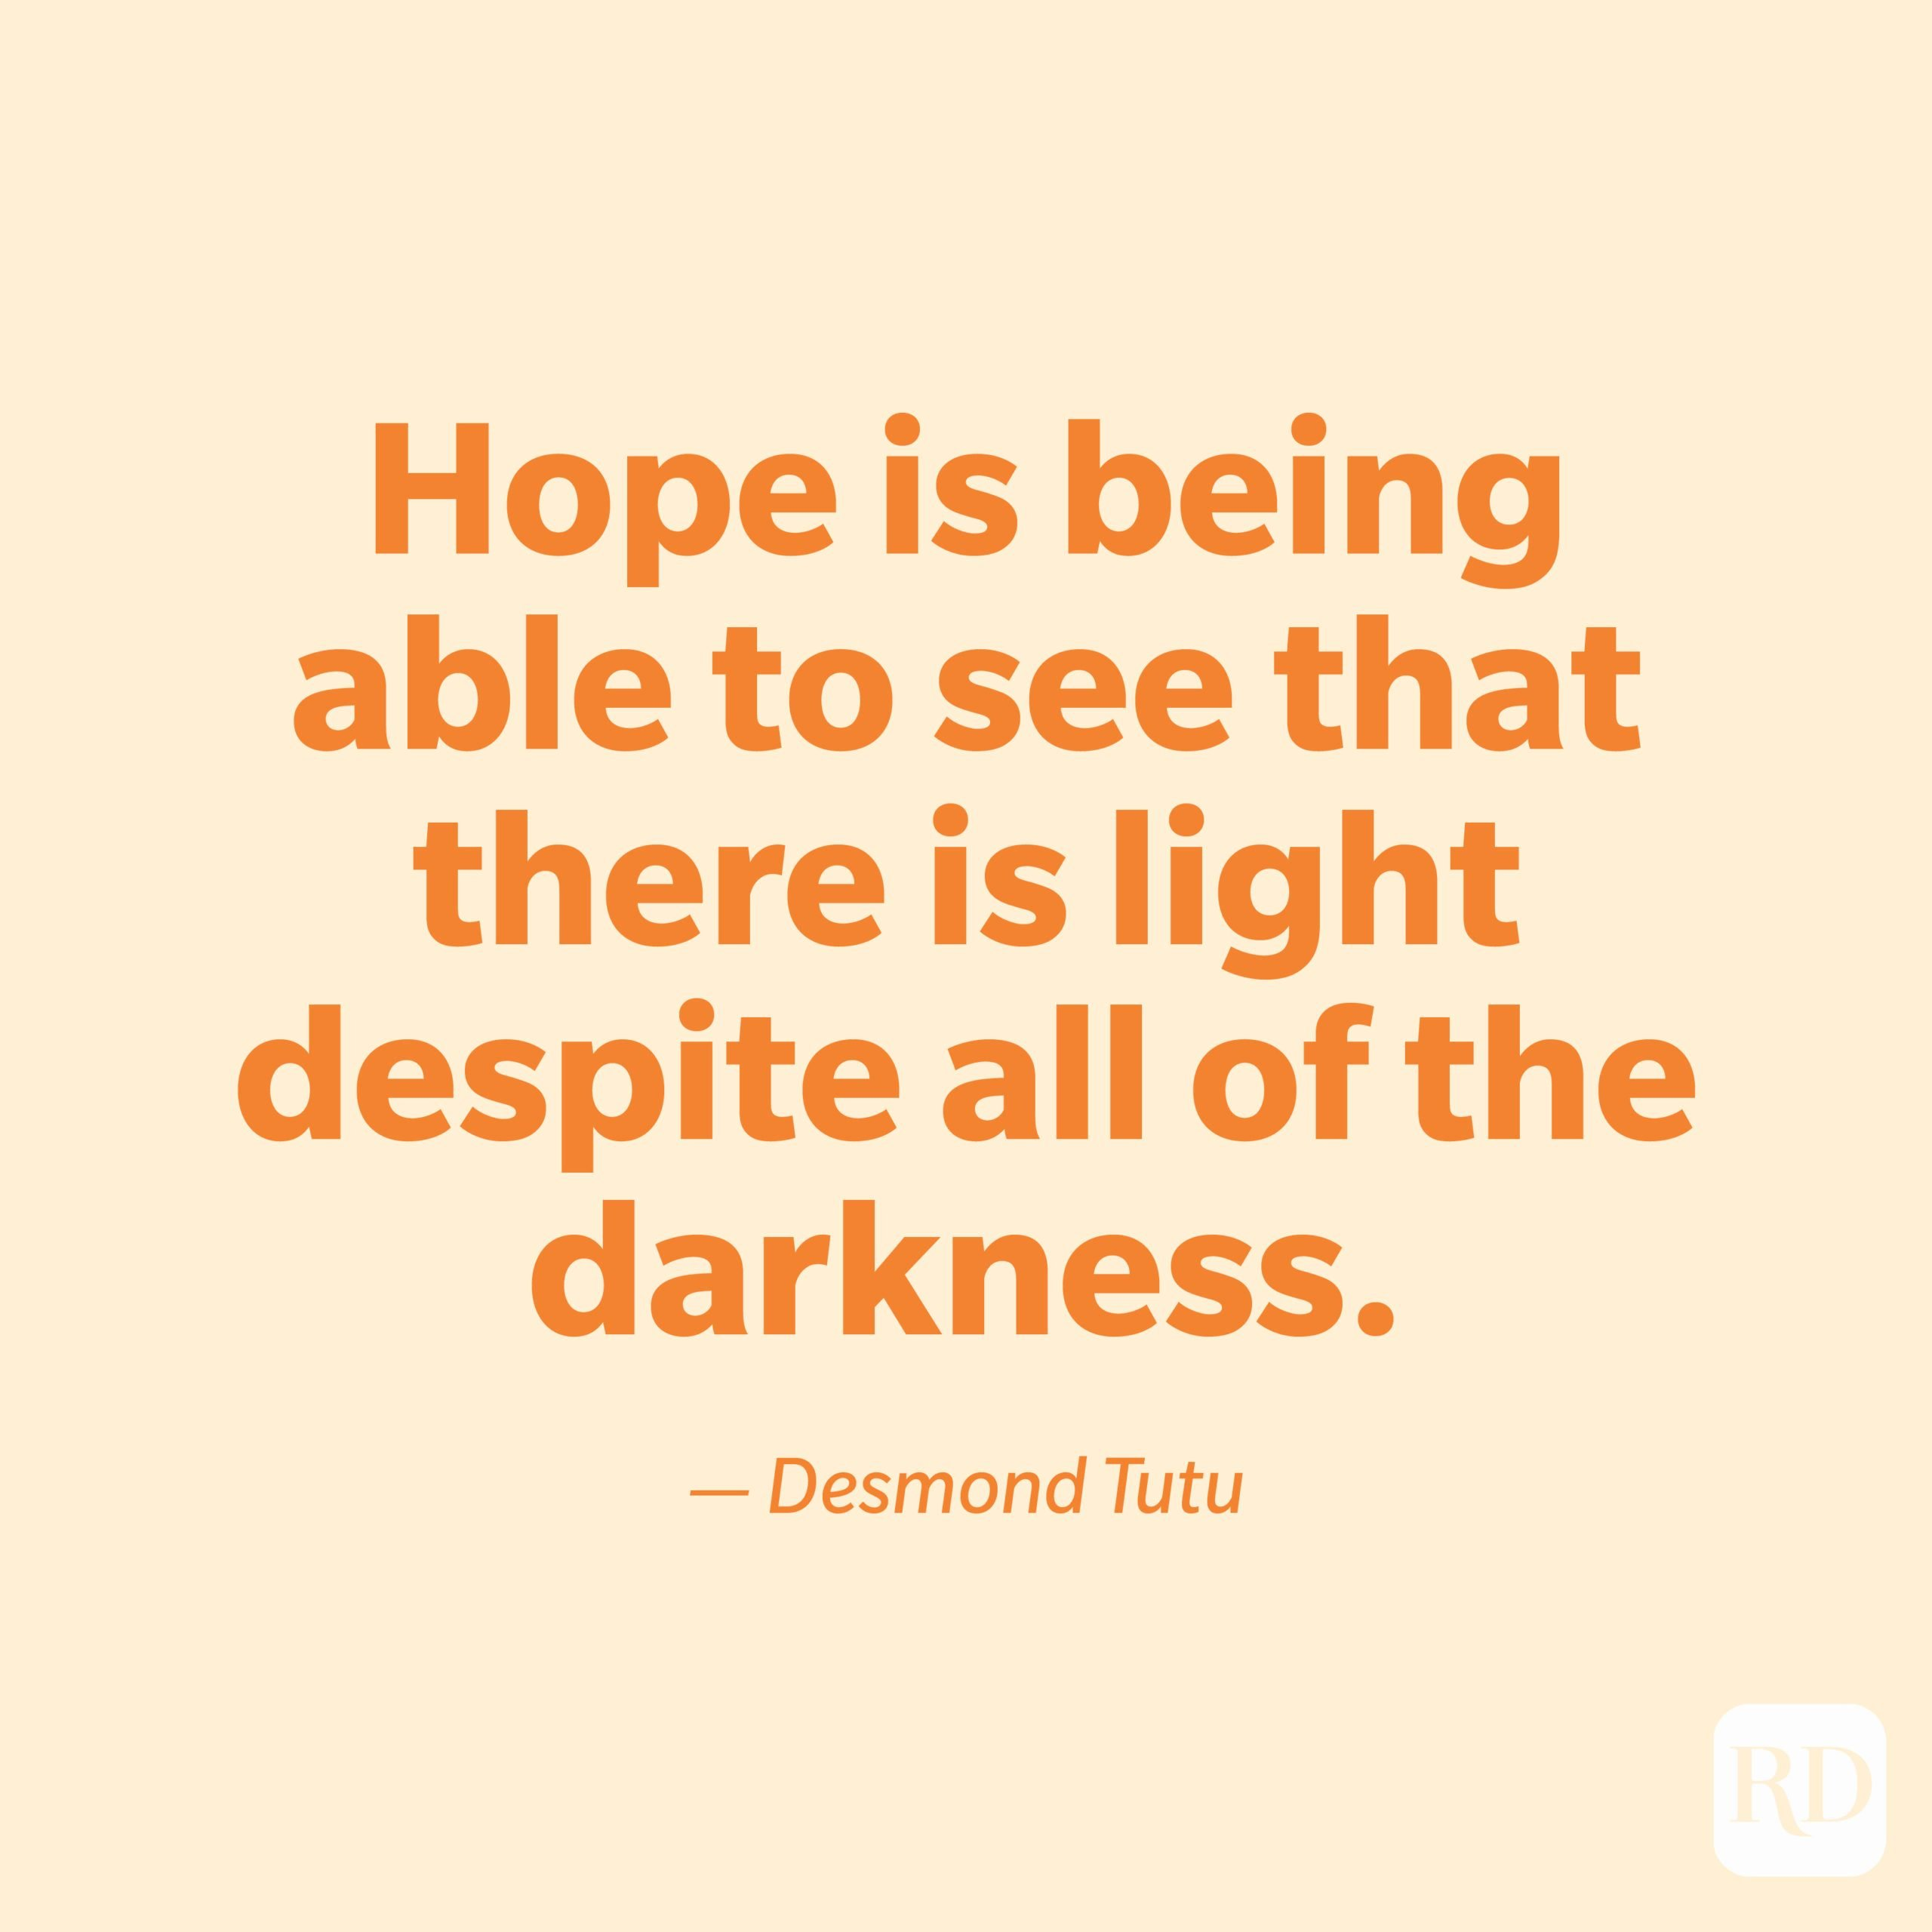 """""""Hope is being able to see that there is light despite all of the darkness."""" —Desmond Tutu"""